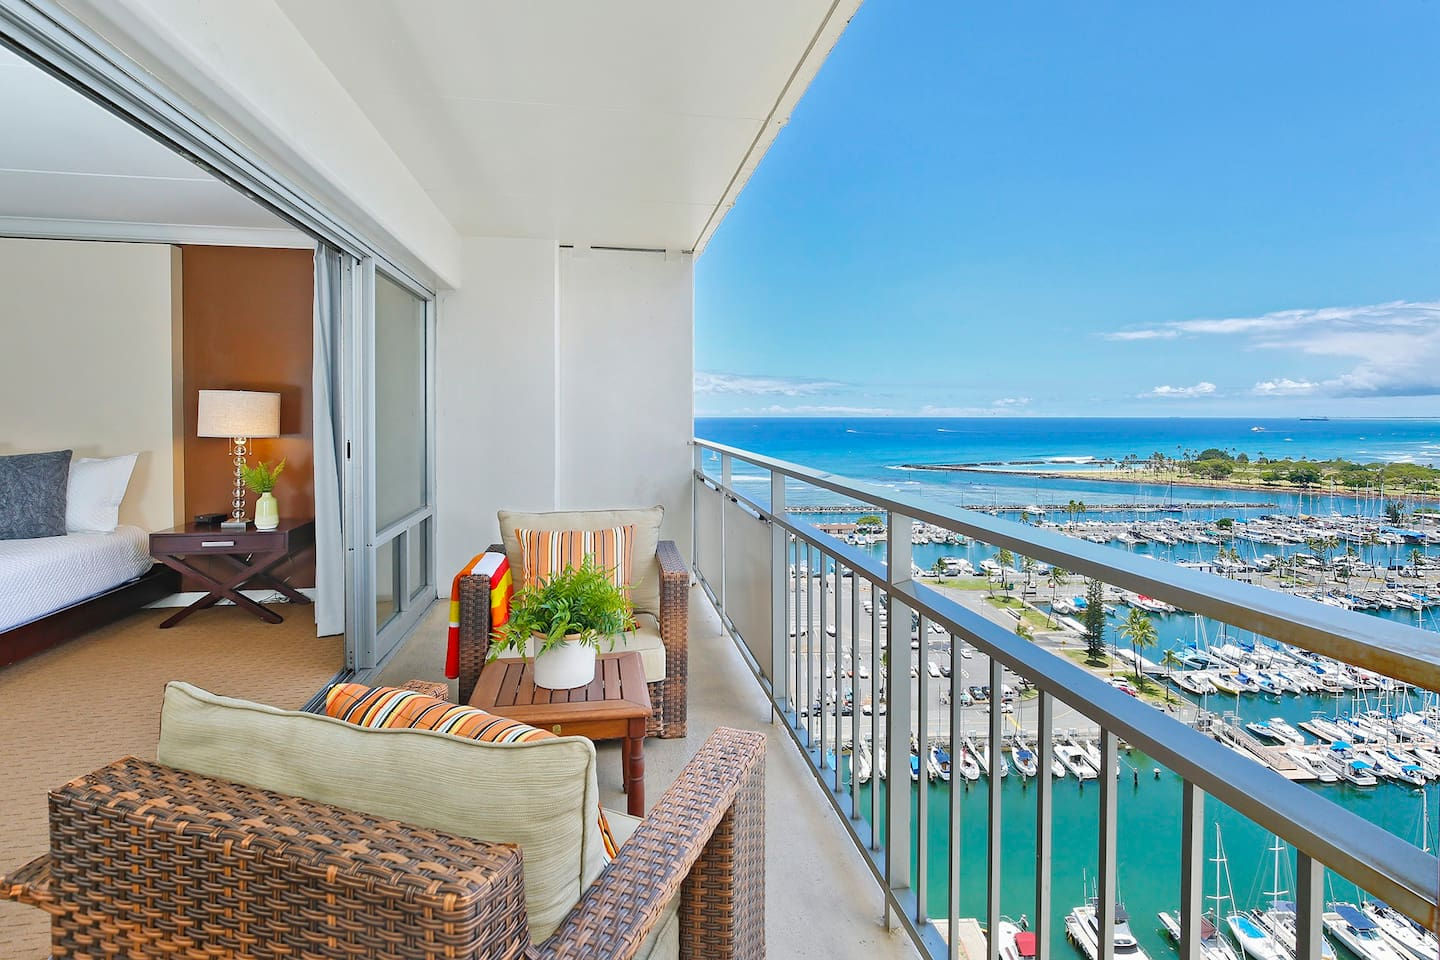 The beautiful marina and ocean views from this contemporary 20th floor studio at The Ilikai, made famous in the opening credits of the original Hawaii Five-O, will remind you that you're on vacation in one of the most beautiful places on earth!